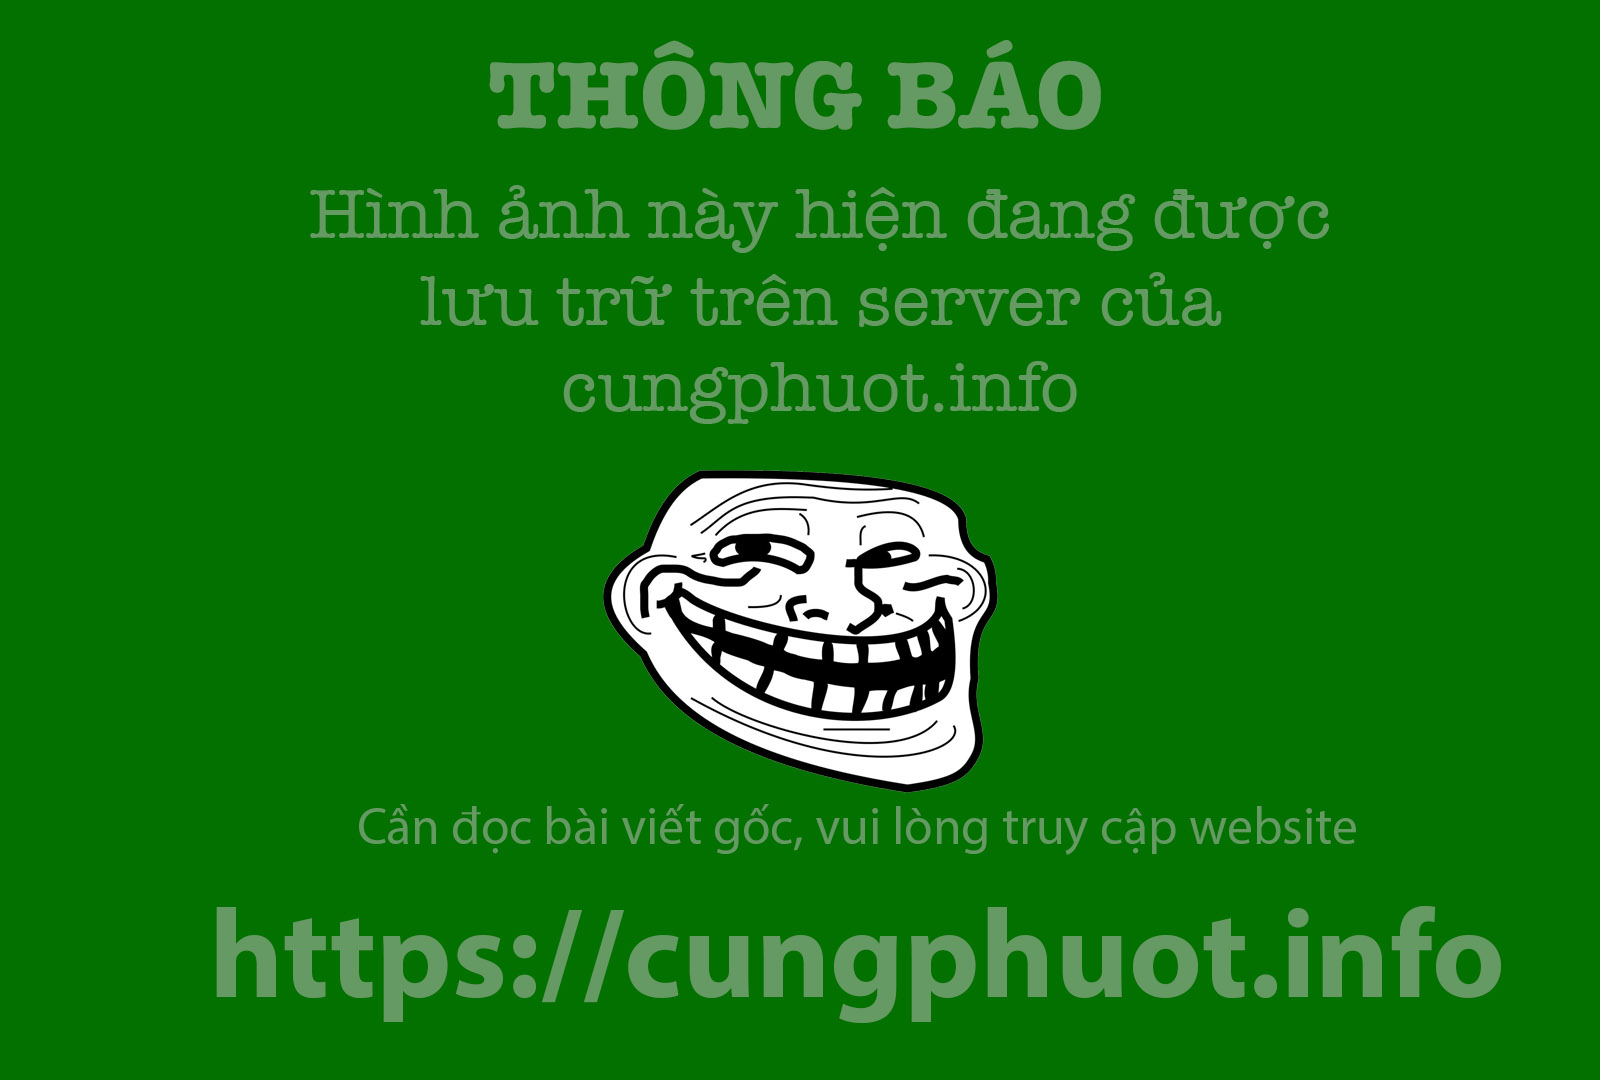 May von nui tren cong troi Muong Long hinh anh 12